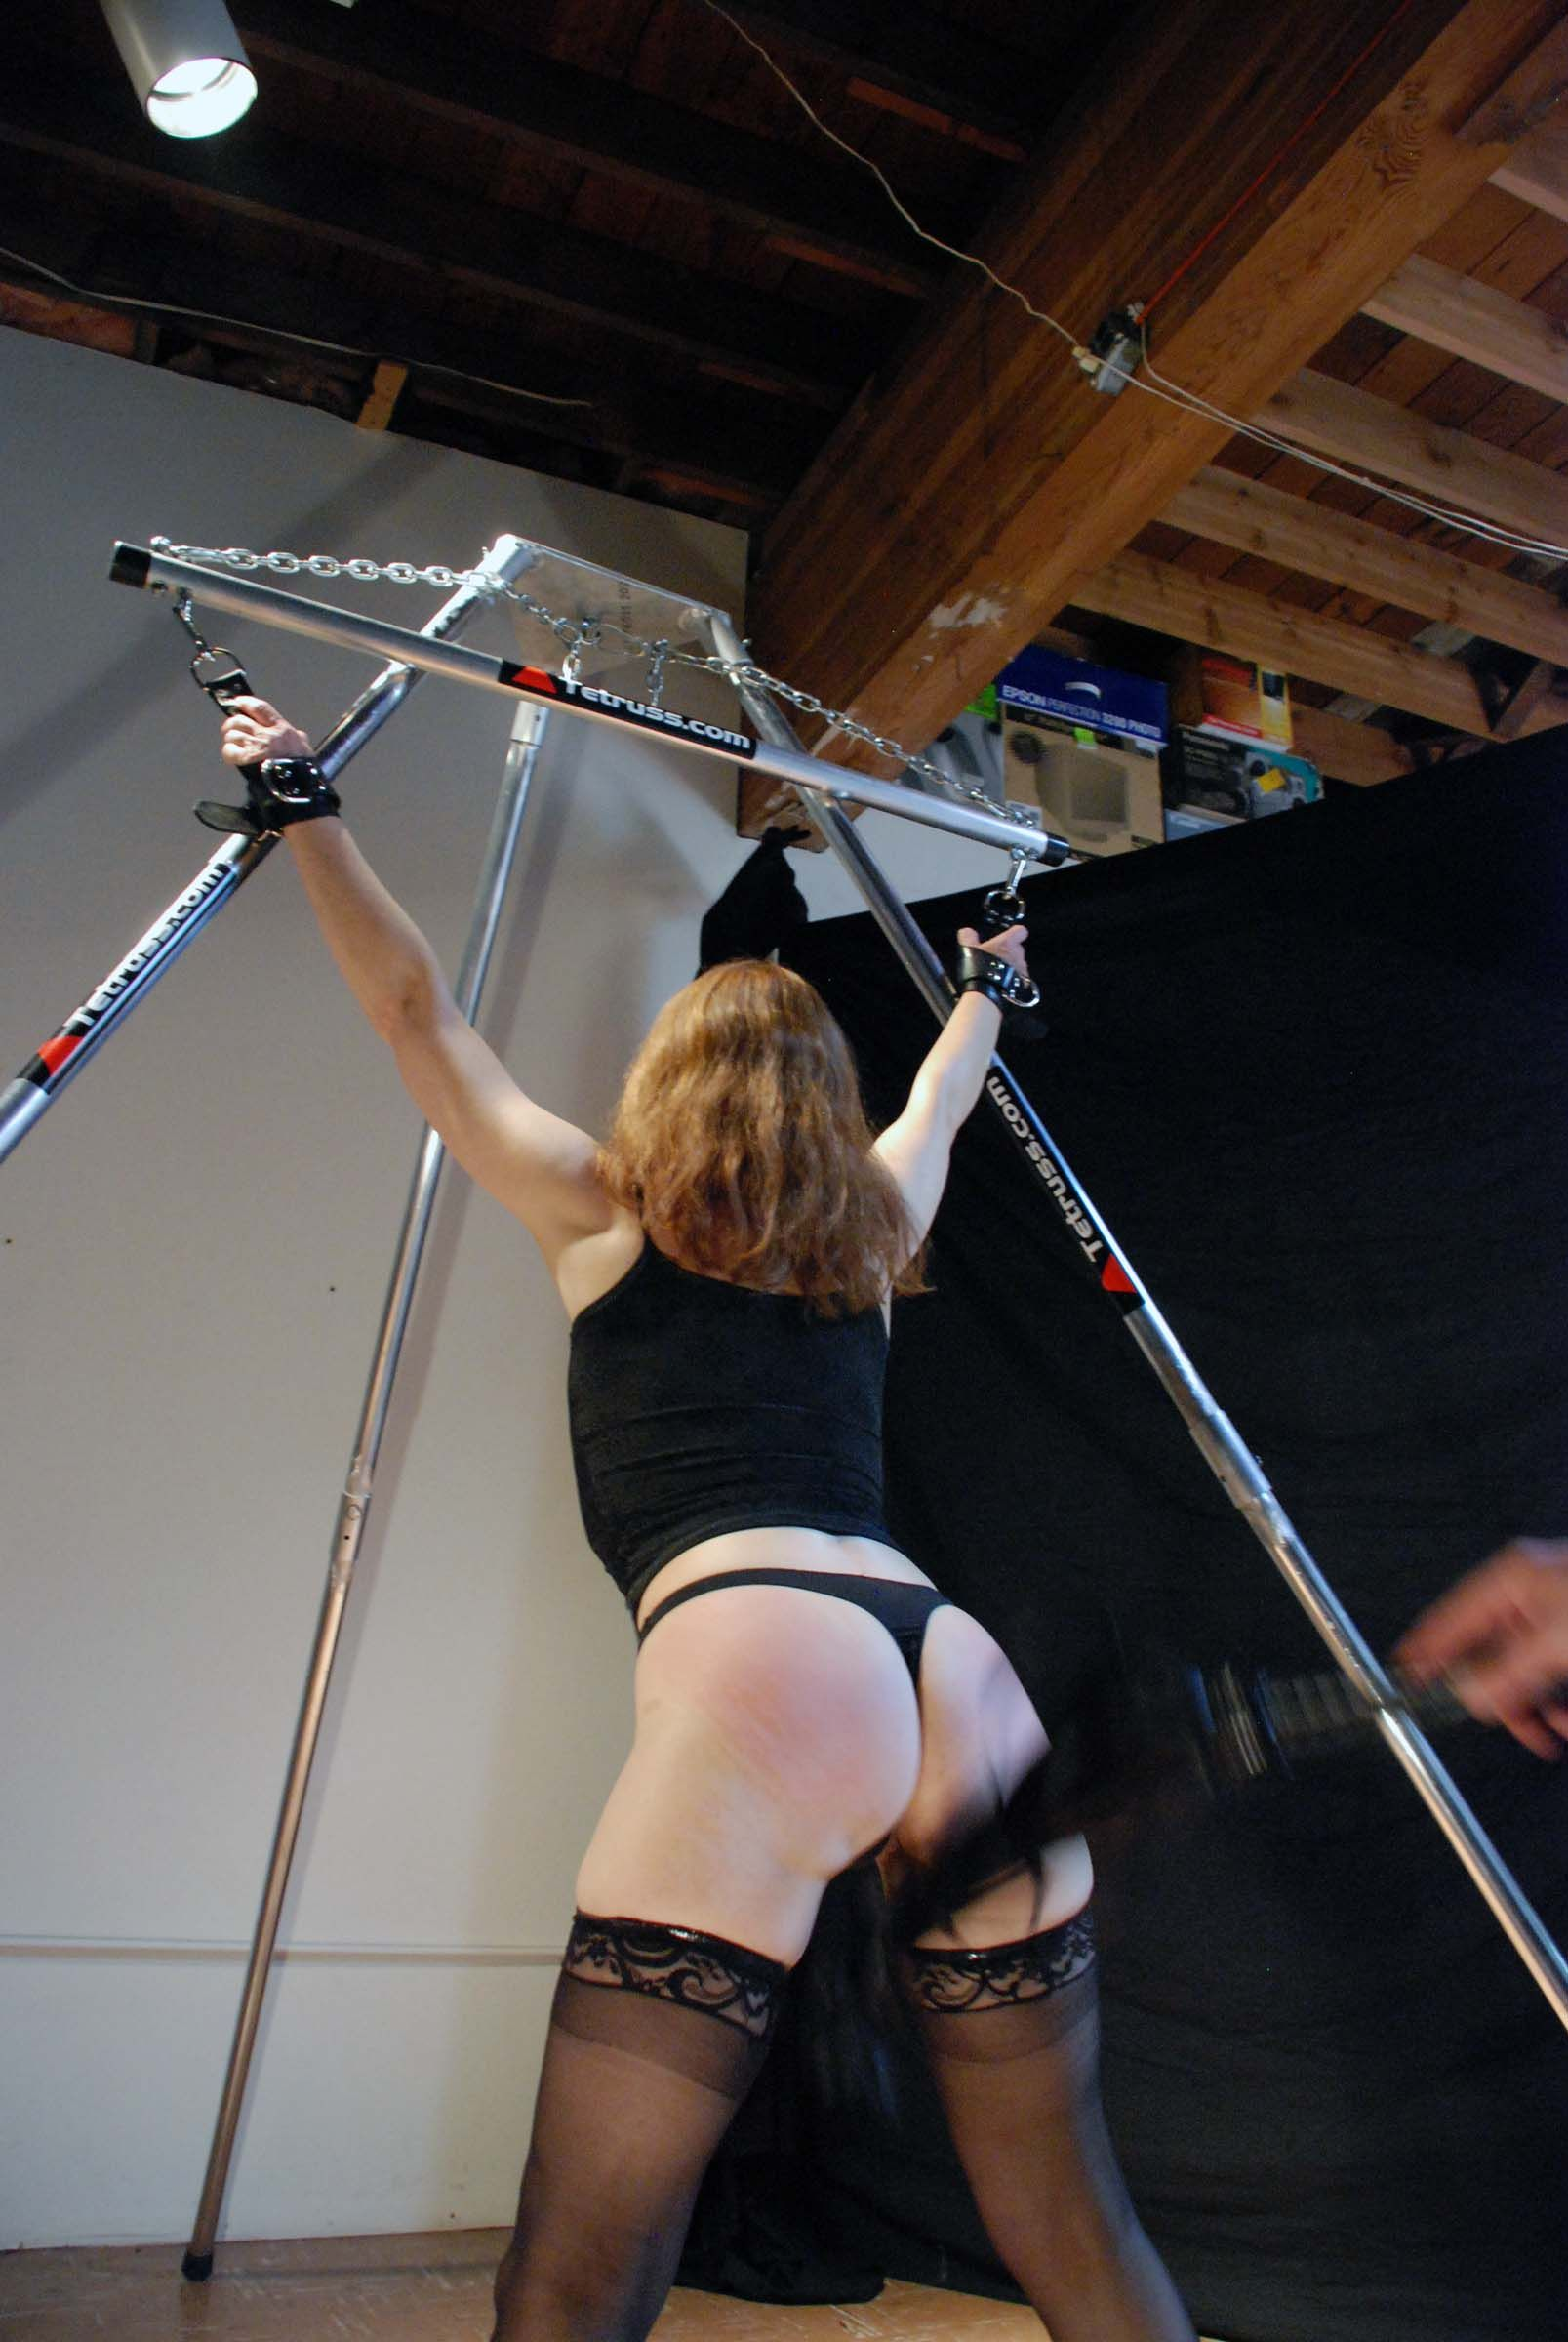 Look her Bondage pictures st andrews cross babe's